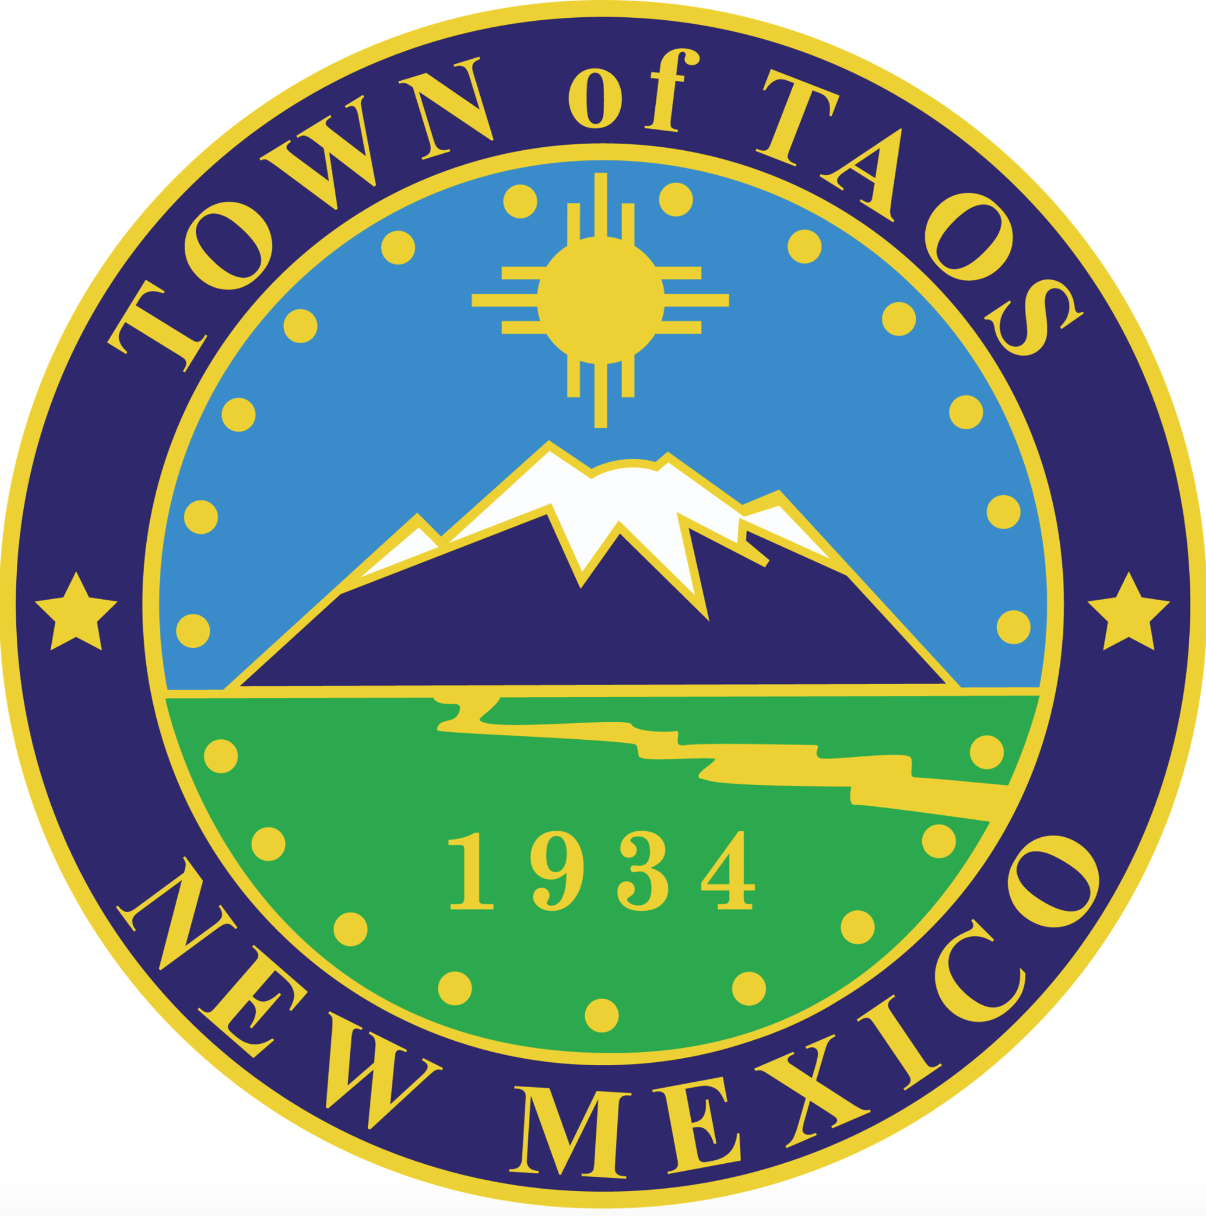 Town of Taos, New Mexico